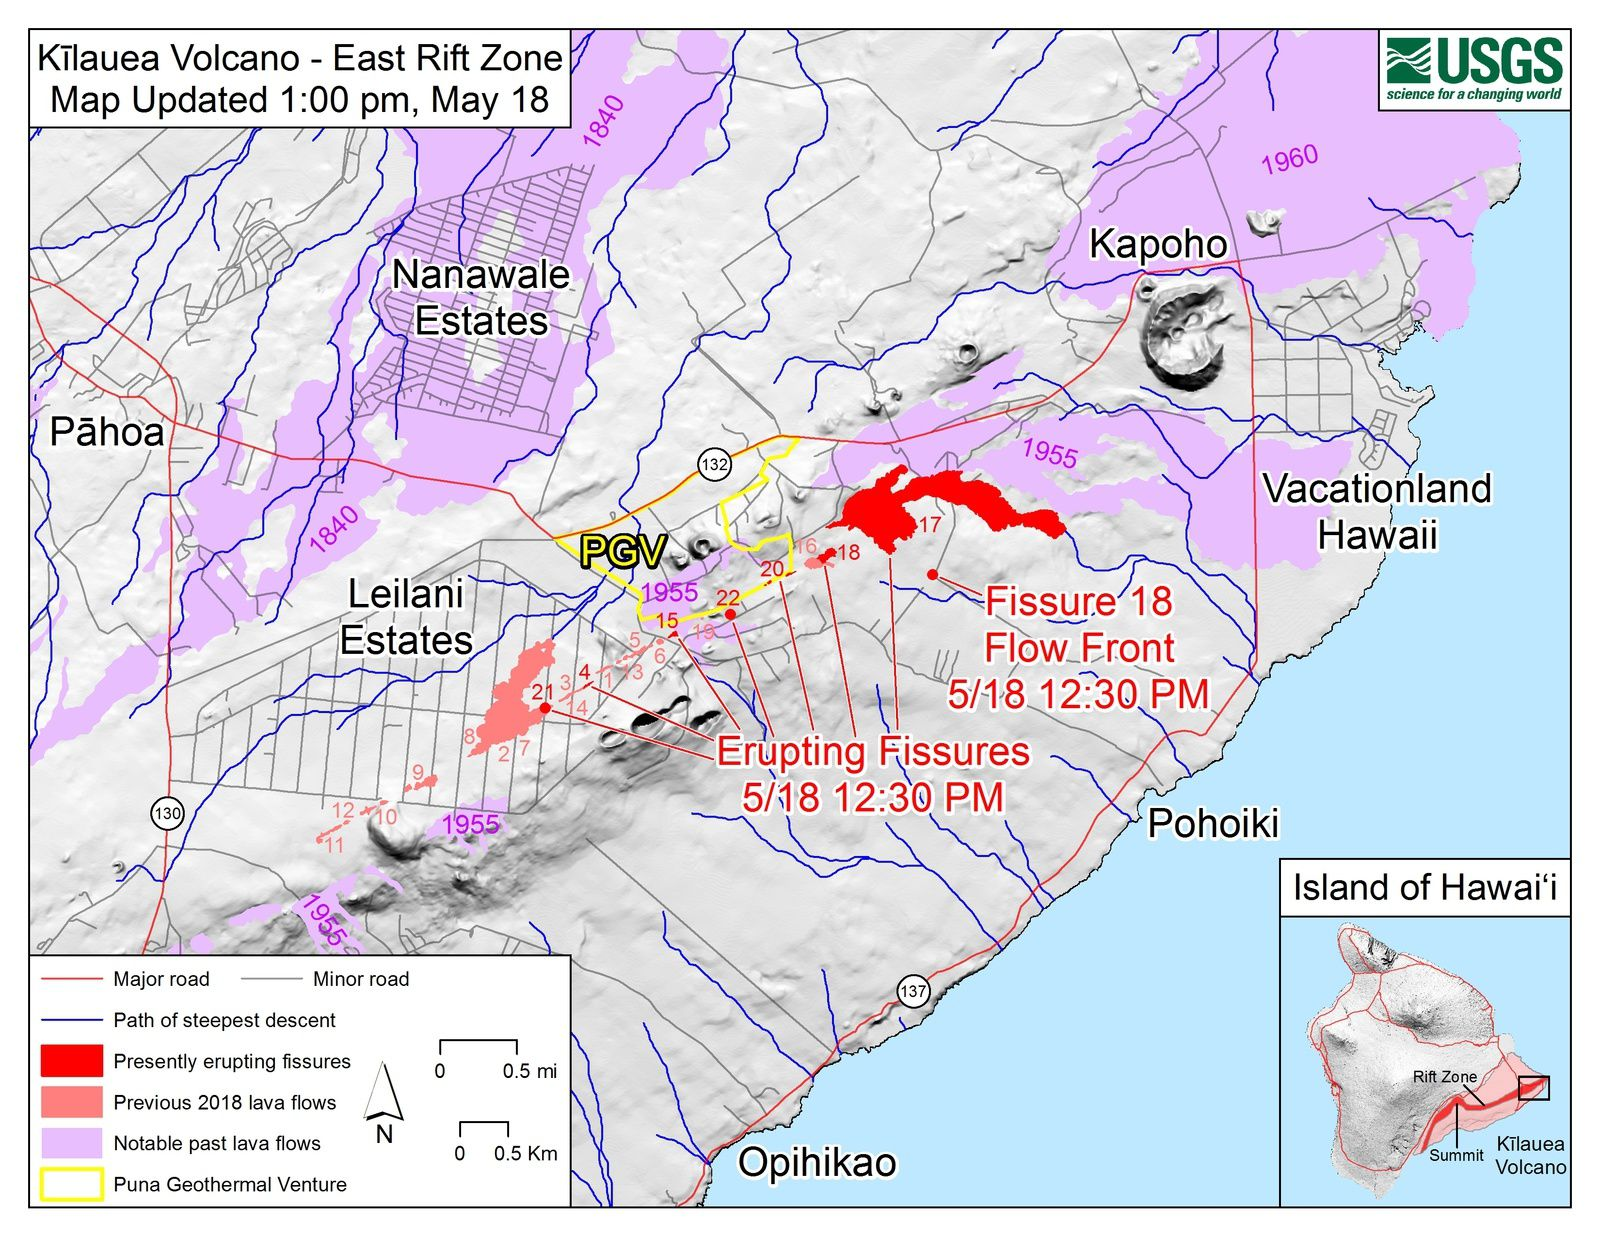 Kilauea - East rift zone: Maps of the flows and fissure2018 - map HVO-USGS 18.05.2018 / 13h